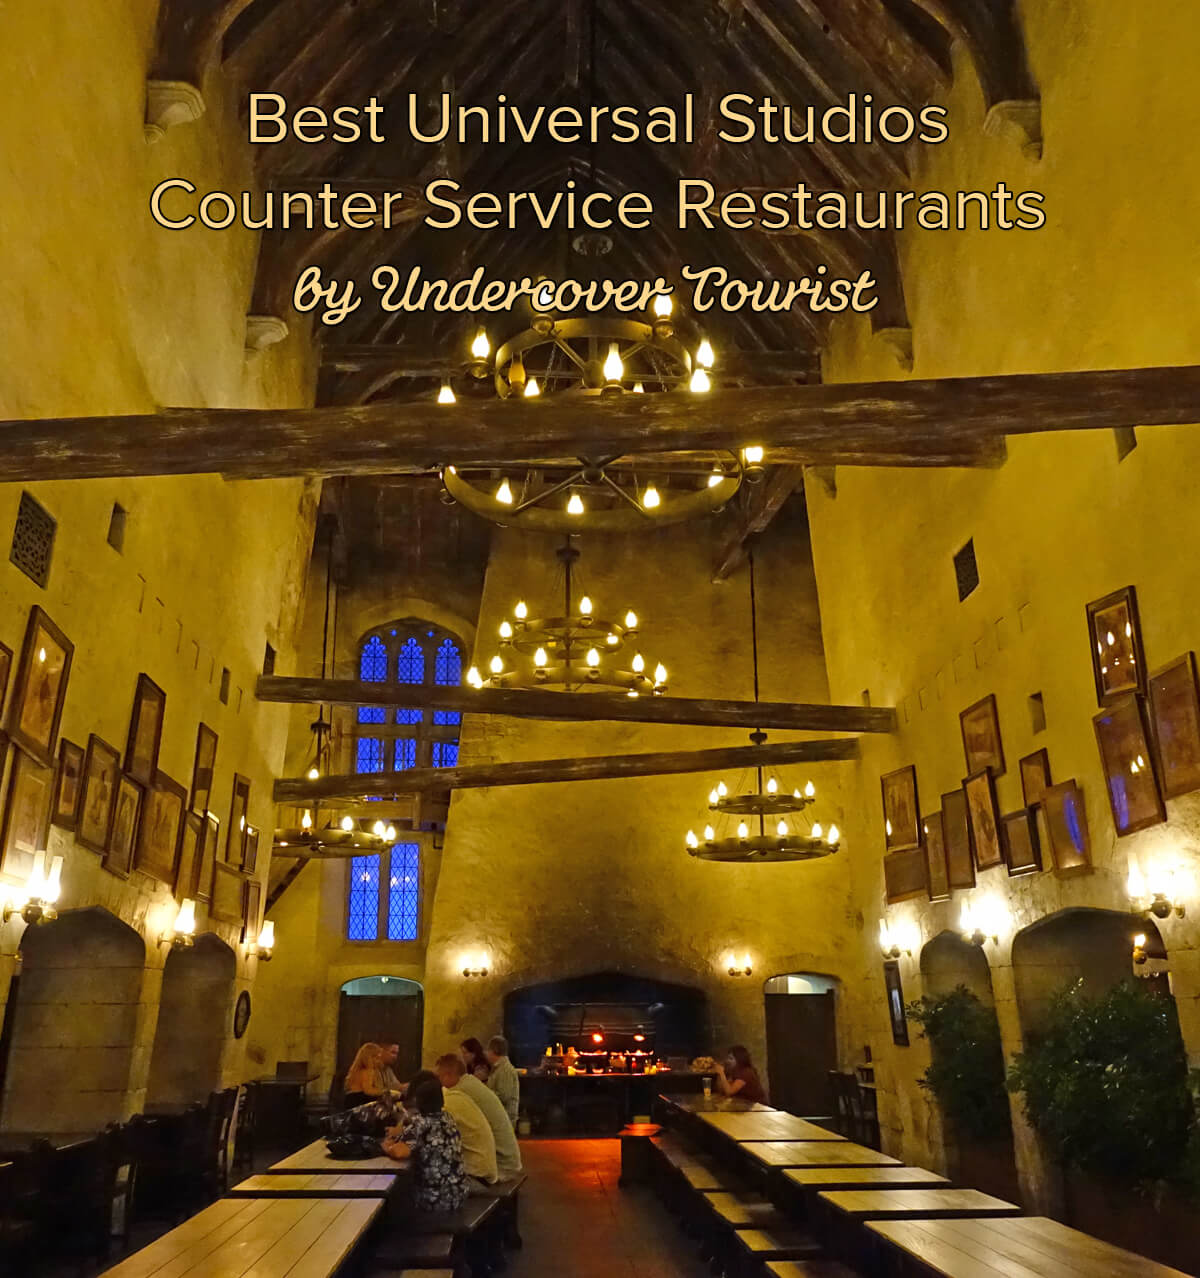 5 Best Universal Studios Counter Service Restaurants